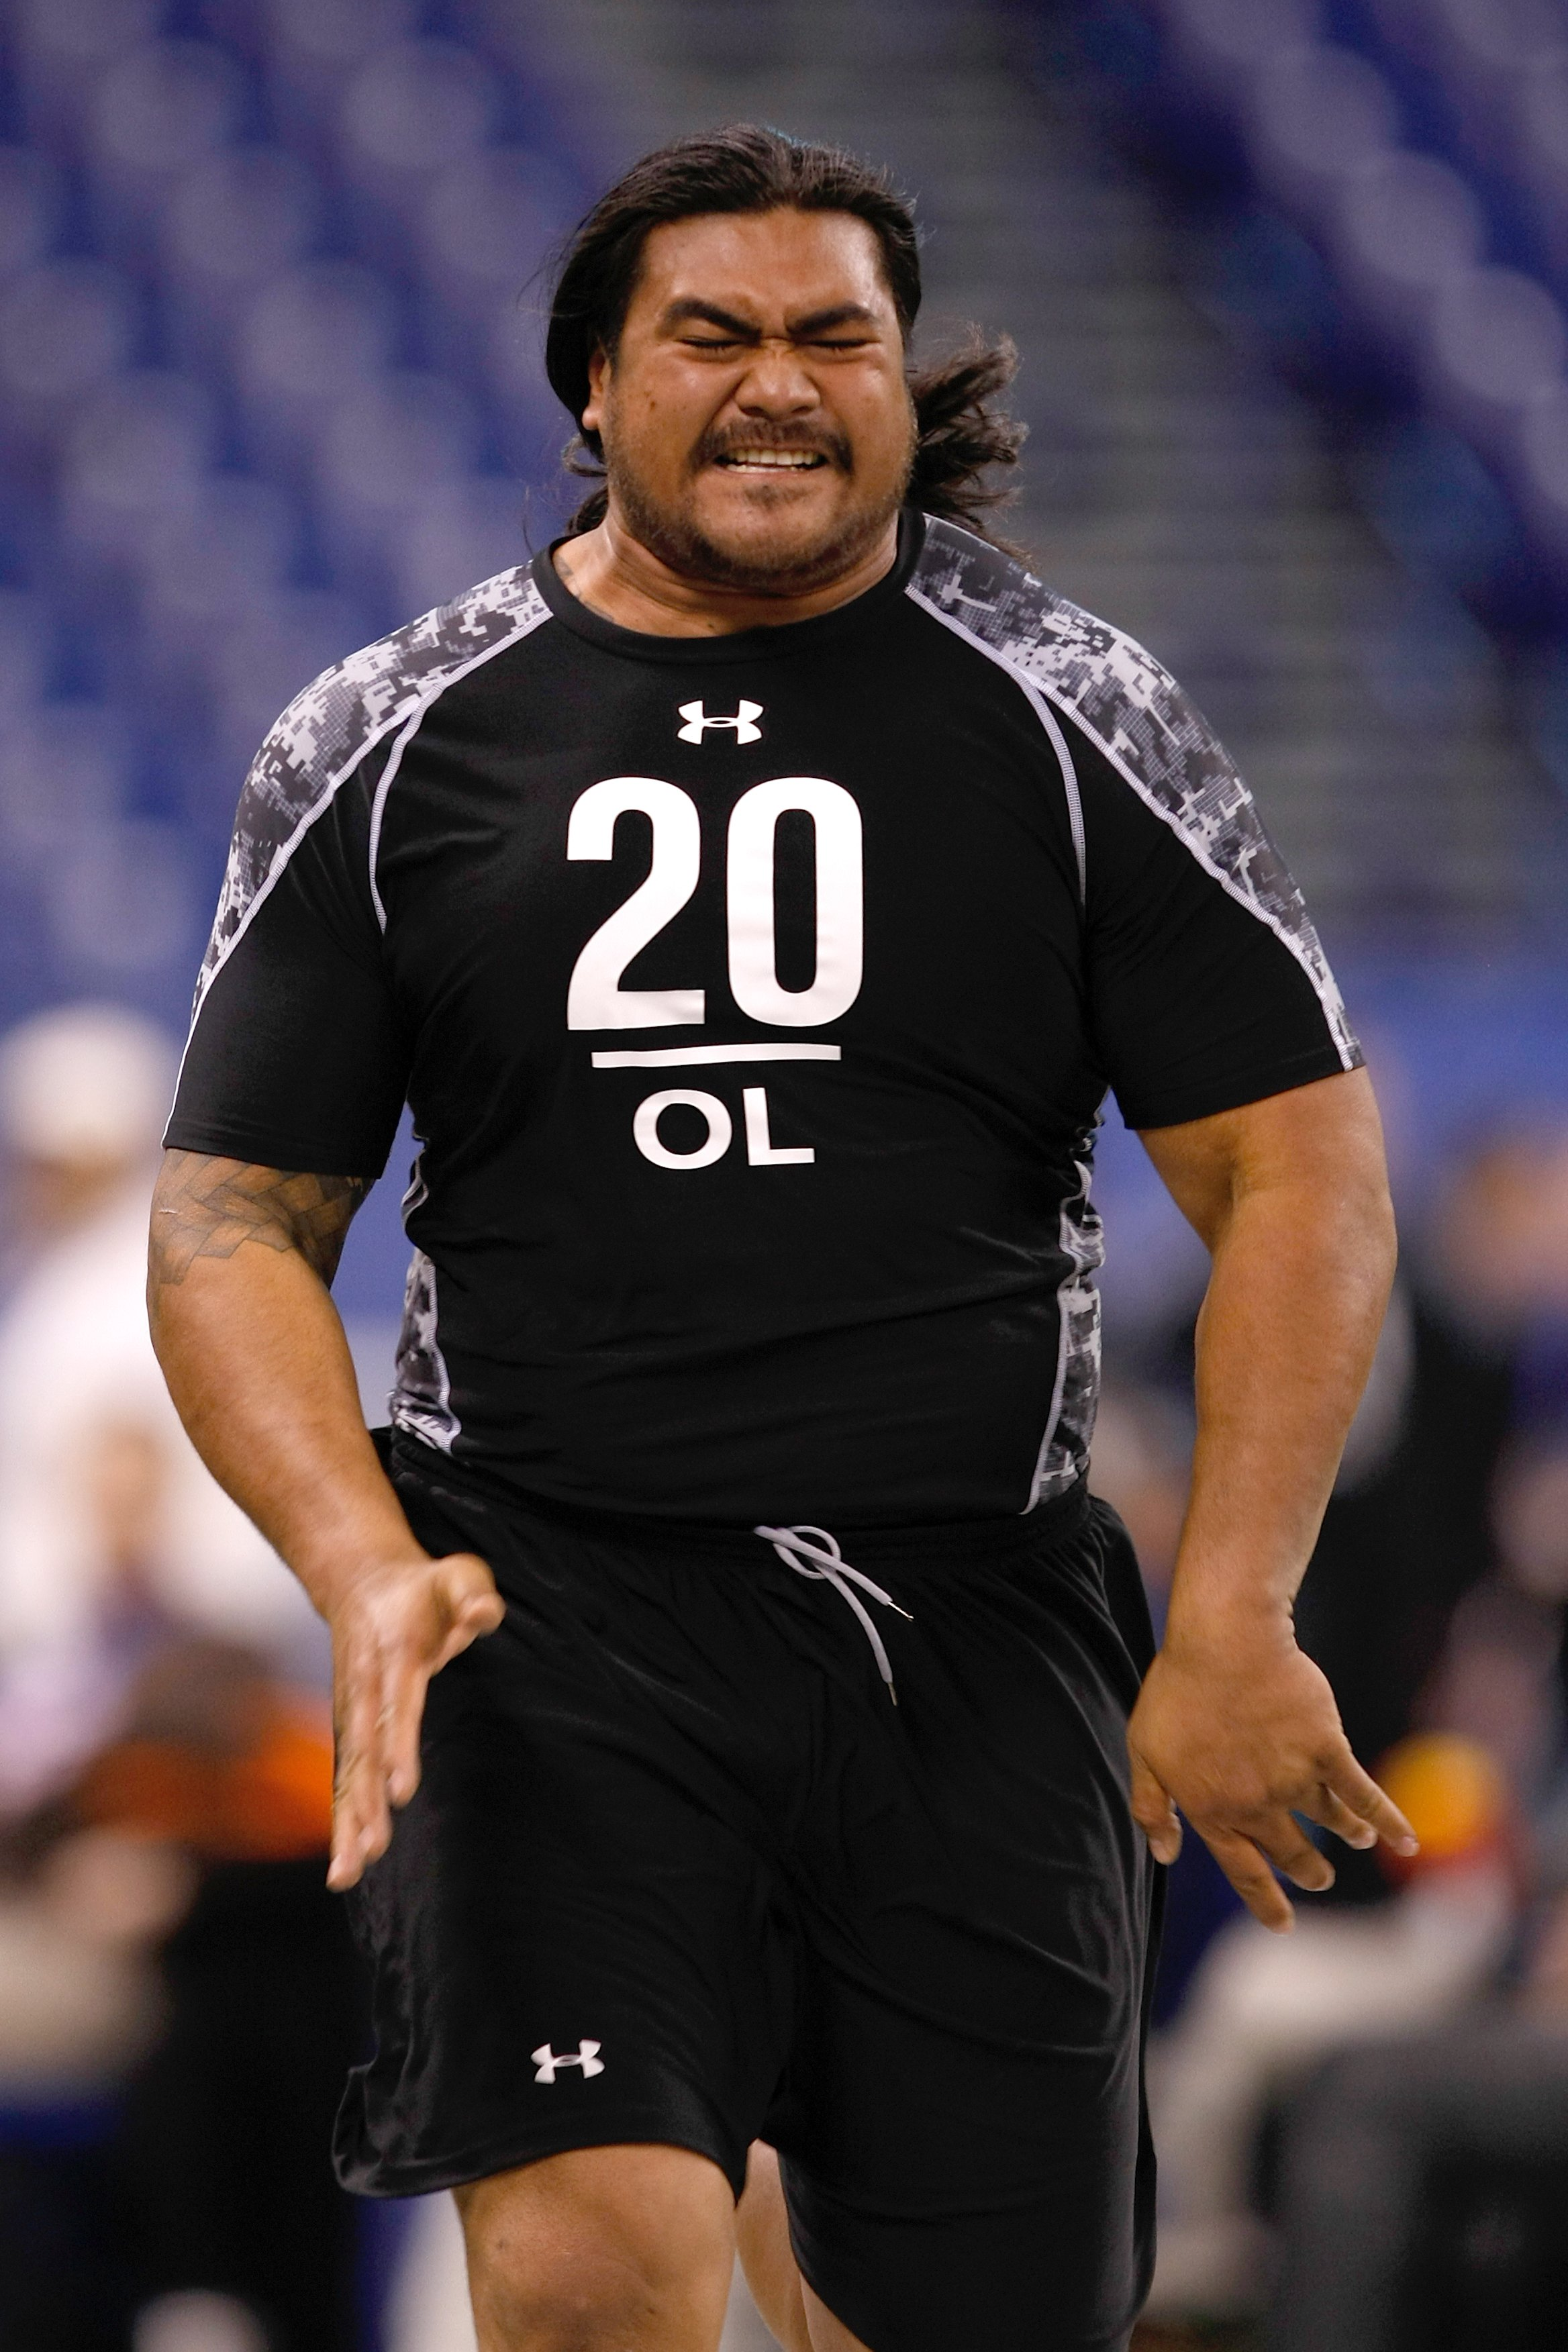 INDIANAPOLIS, IN - FEBRUARY 27: Offensive lineman Mike Iupati of Idaho runs the 40 yard dash during the NFL Scouting Combine presented by Under Armour at Lucas Oil Stadium on February 27, 2010 in Indianapolis, Indiana. (Photo by Scott Boehm/Getty Images)